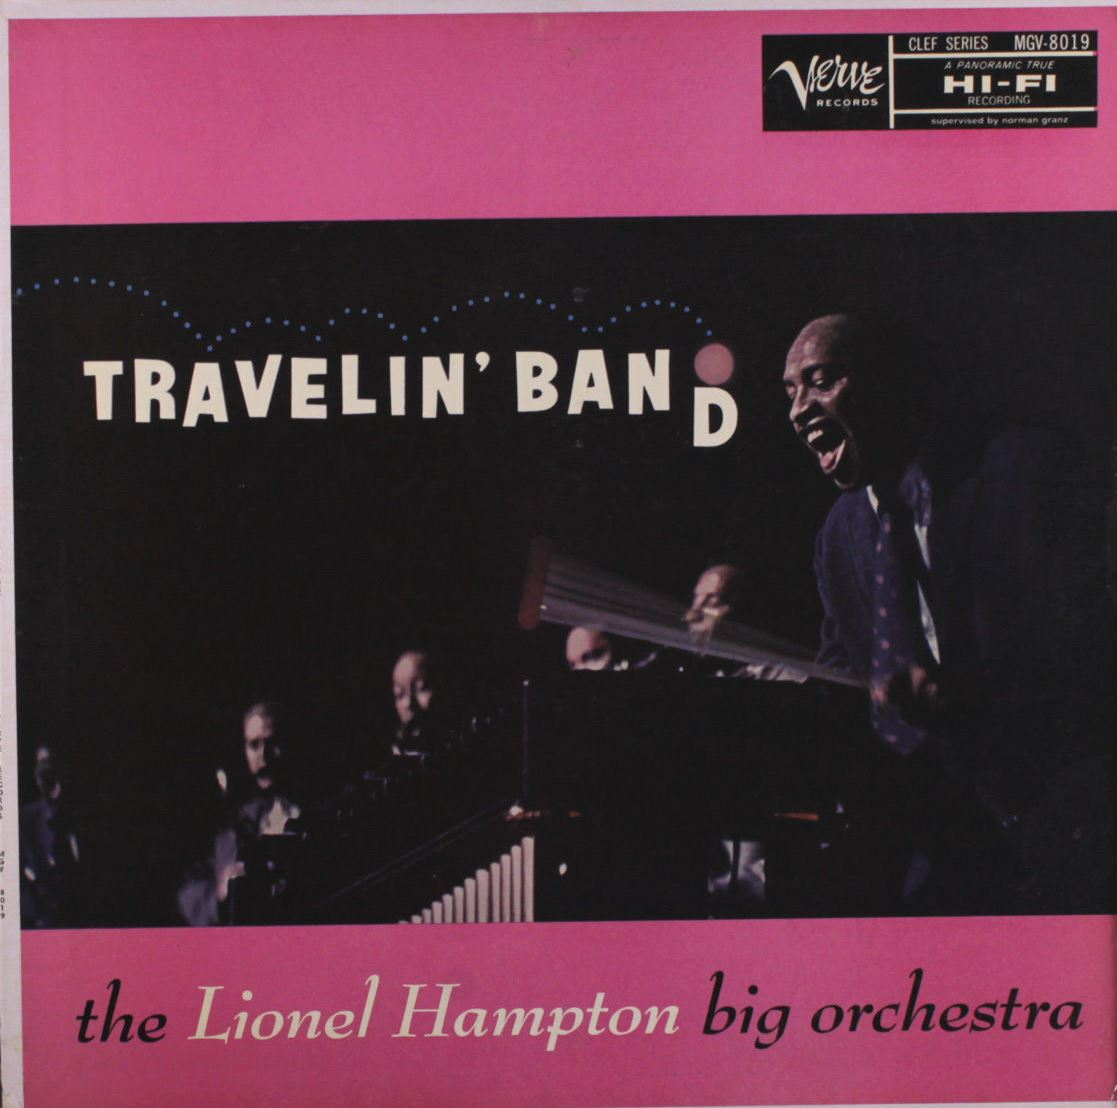 lionel hampton - travelin band 8019